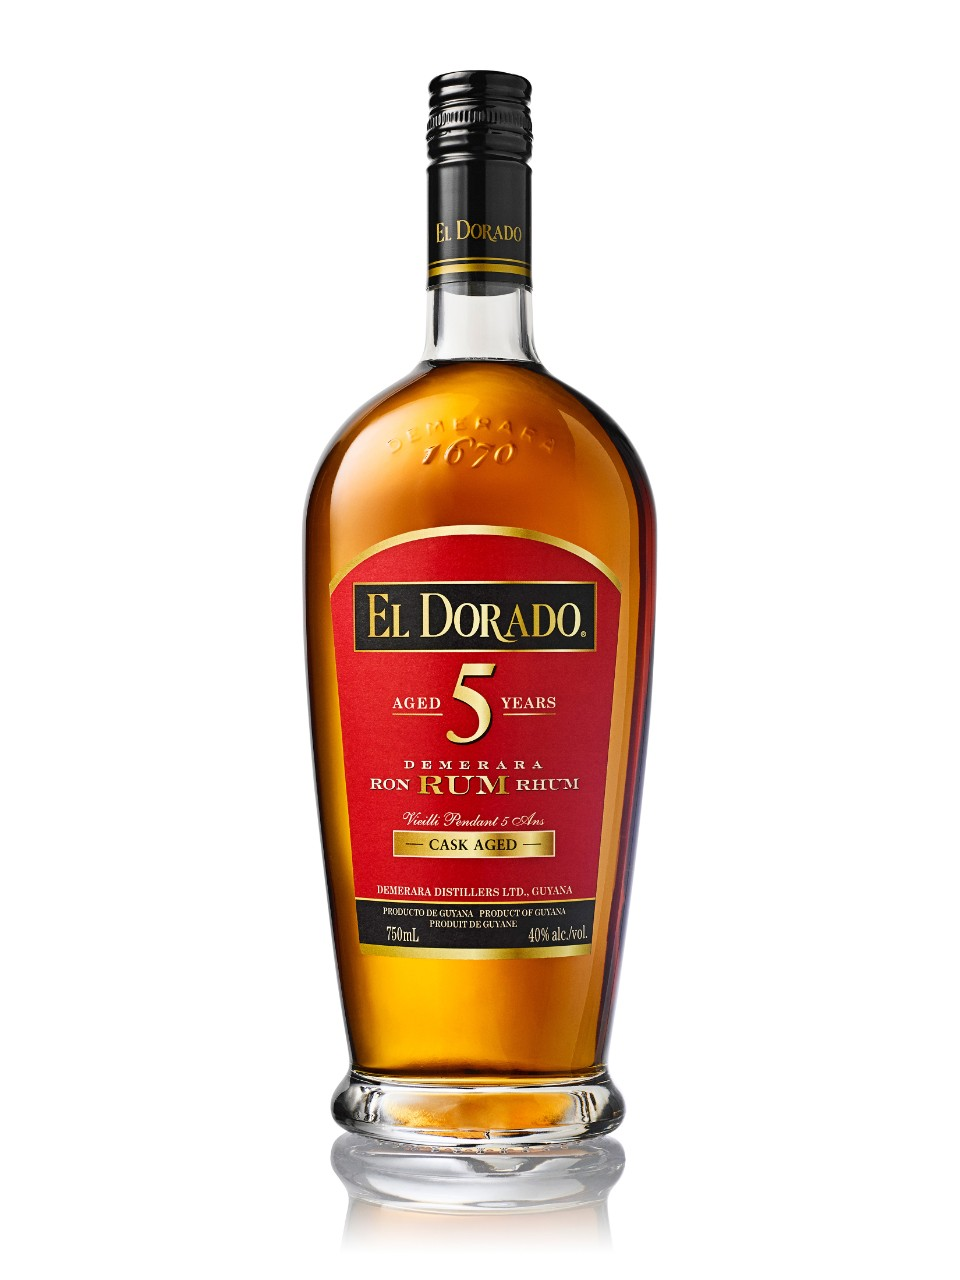 El Dorado 5 Year Old Rum